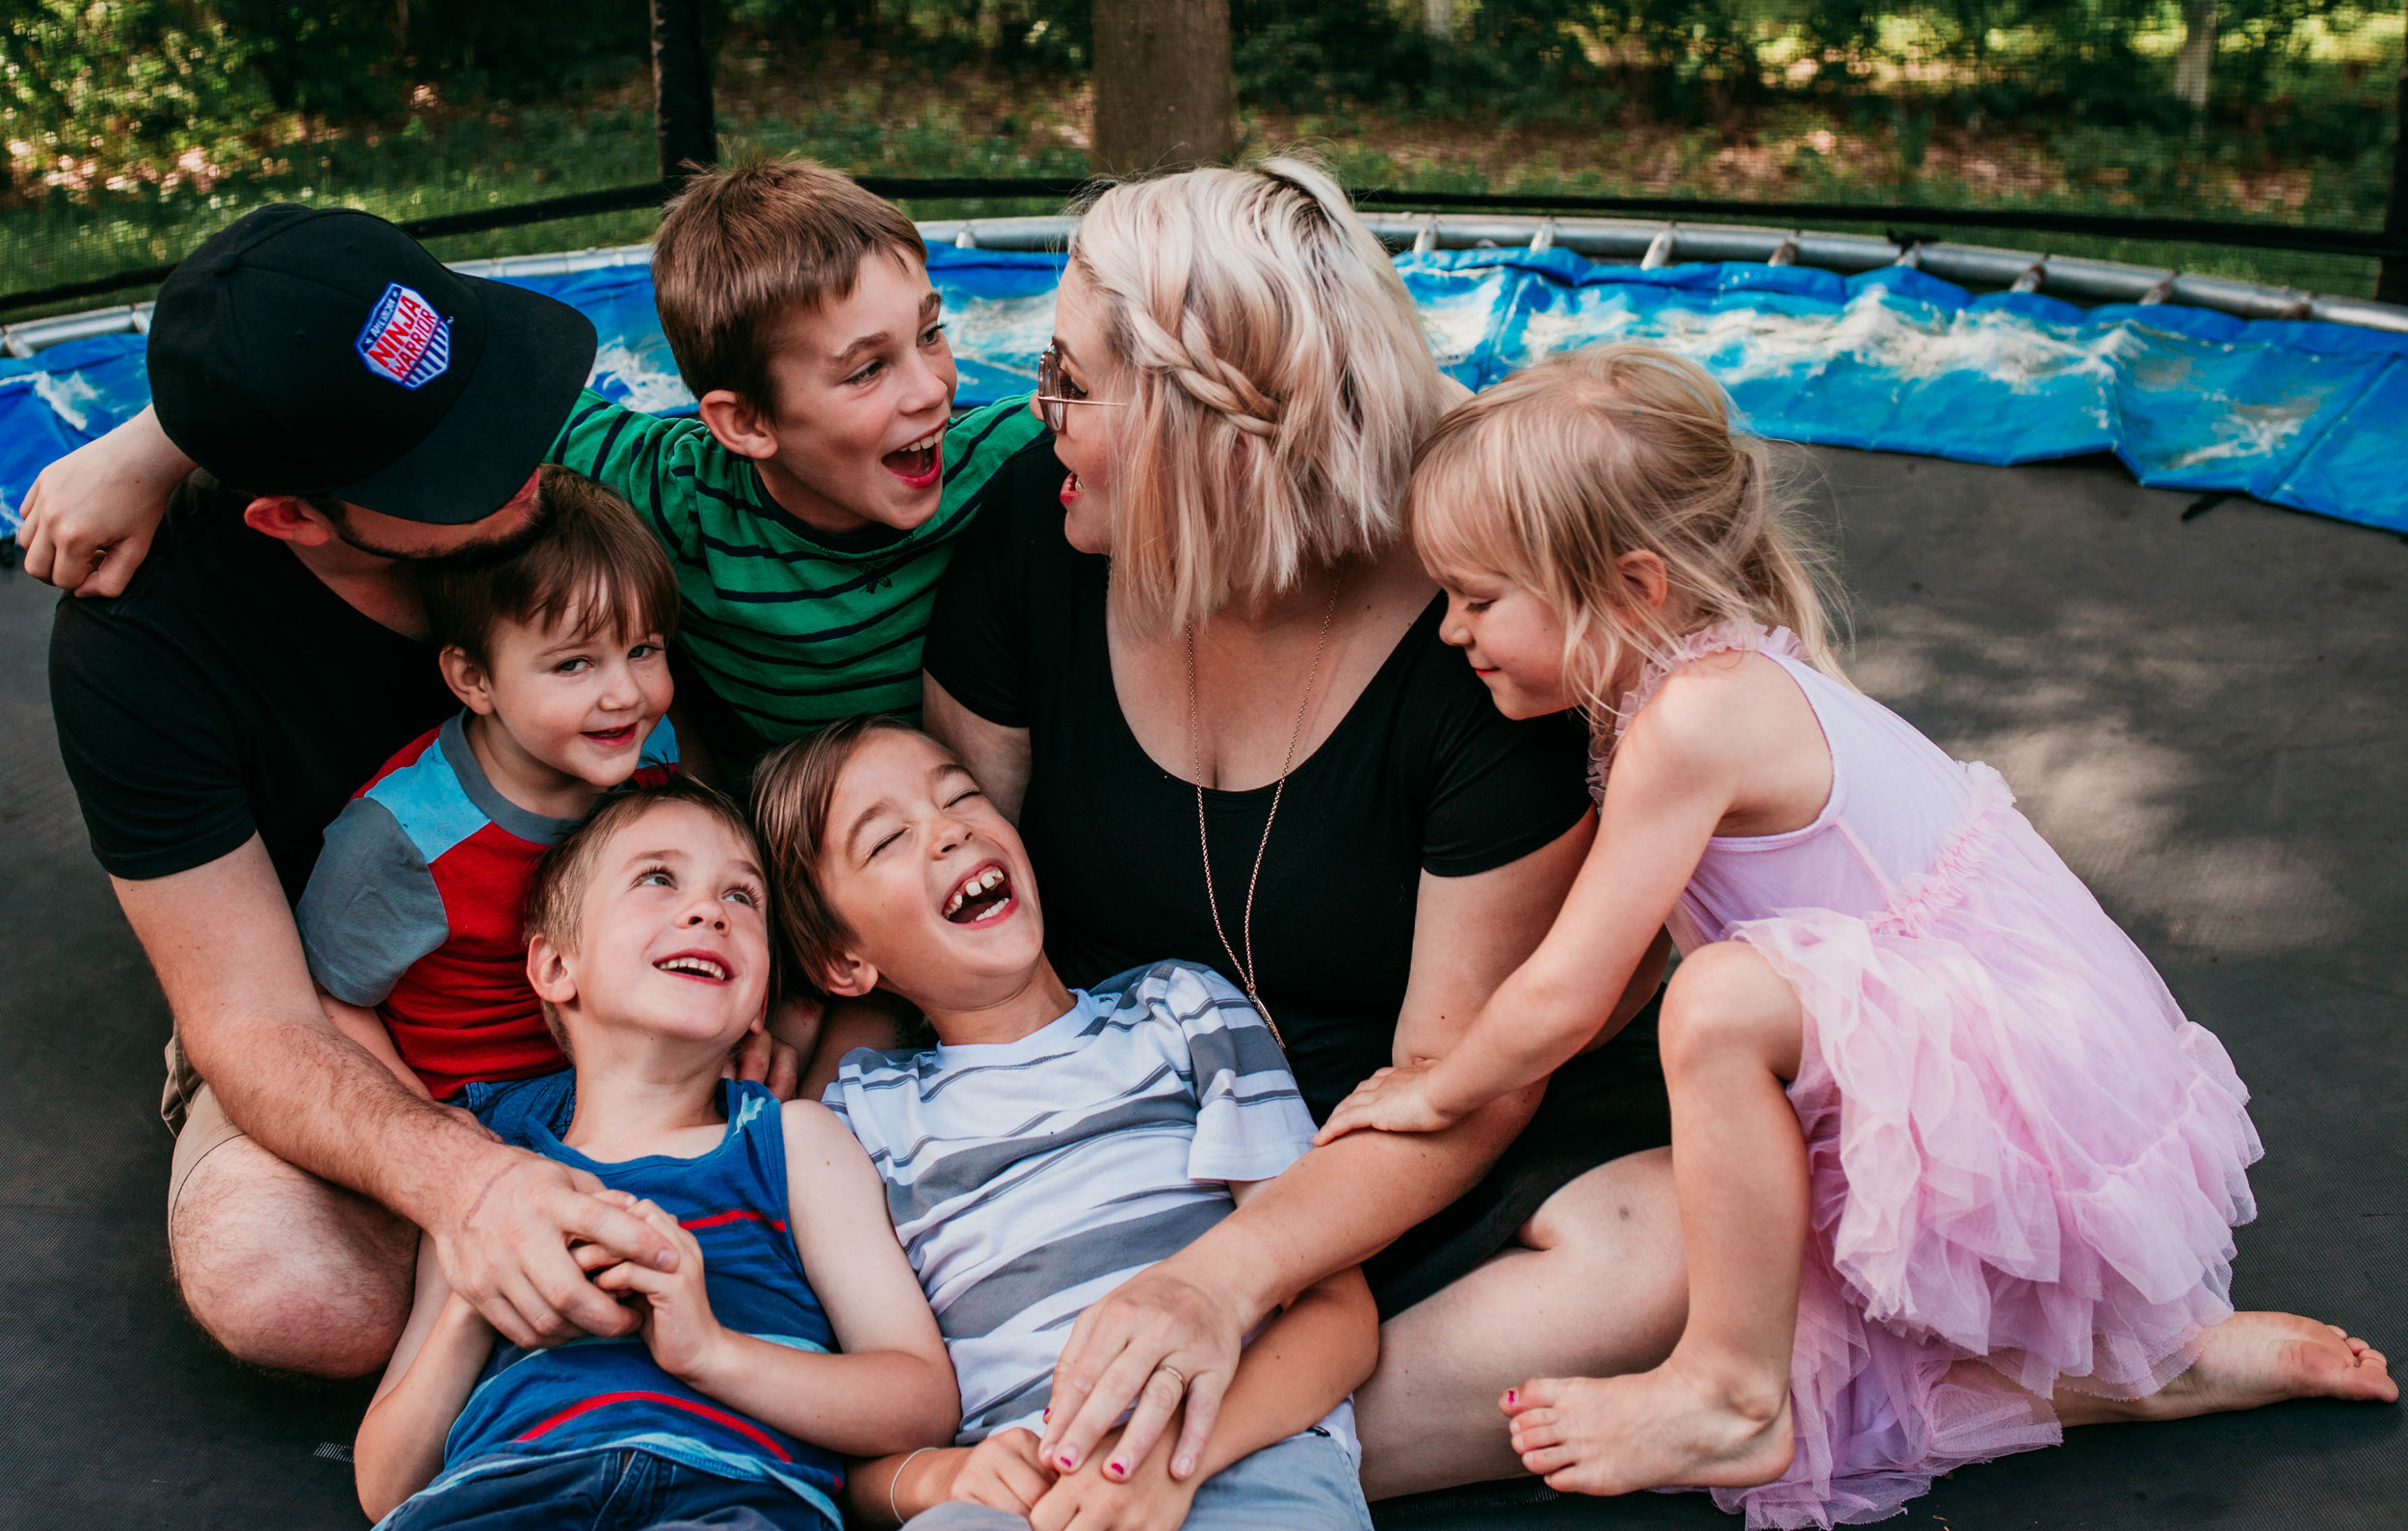 The family gathers together on the trampoline laughing about something silly.   The Carter Family : Summer in the Backyard | Hannahill Photography | Kansas City, MO | Family photography lifestyle photographer | Wedding photographer Durham North Carolina Raleigh | Birth photographer Documentary